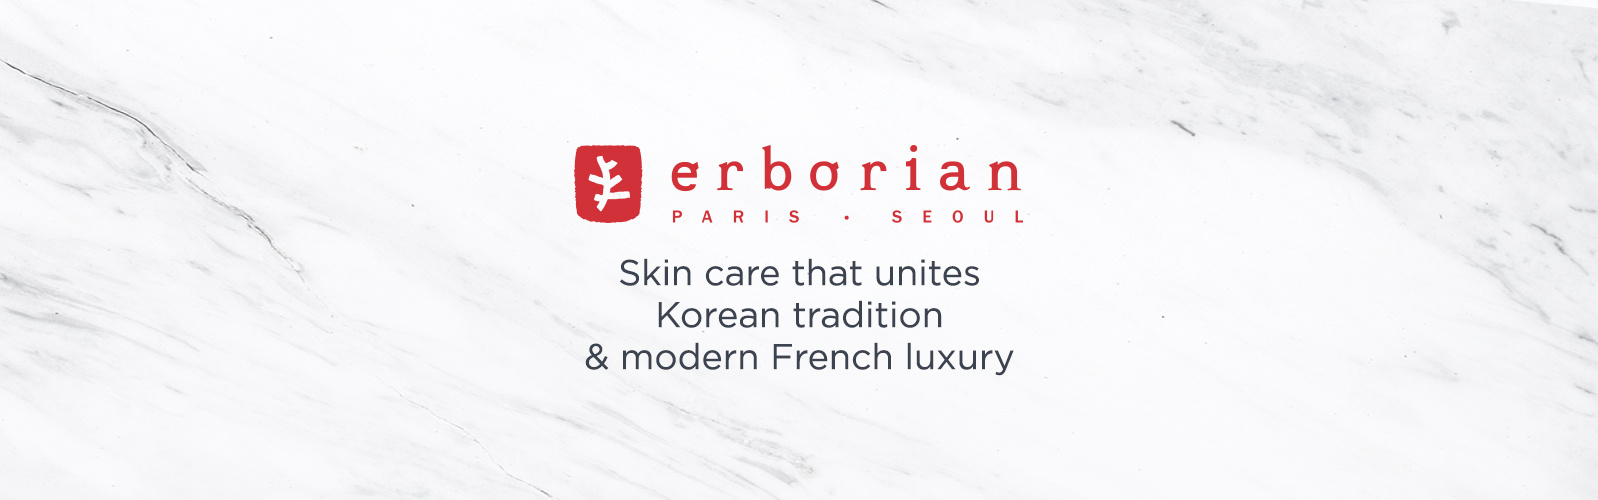 Erborian. Skin care that unites Korean tradition & modern French luxury